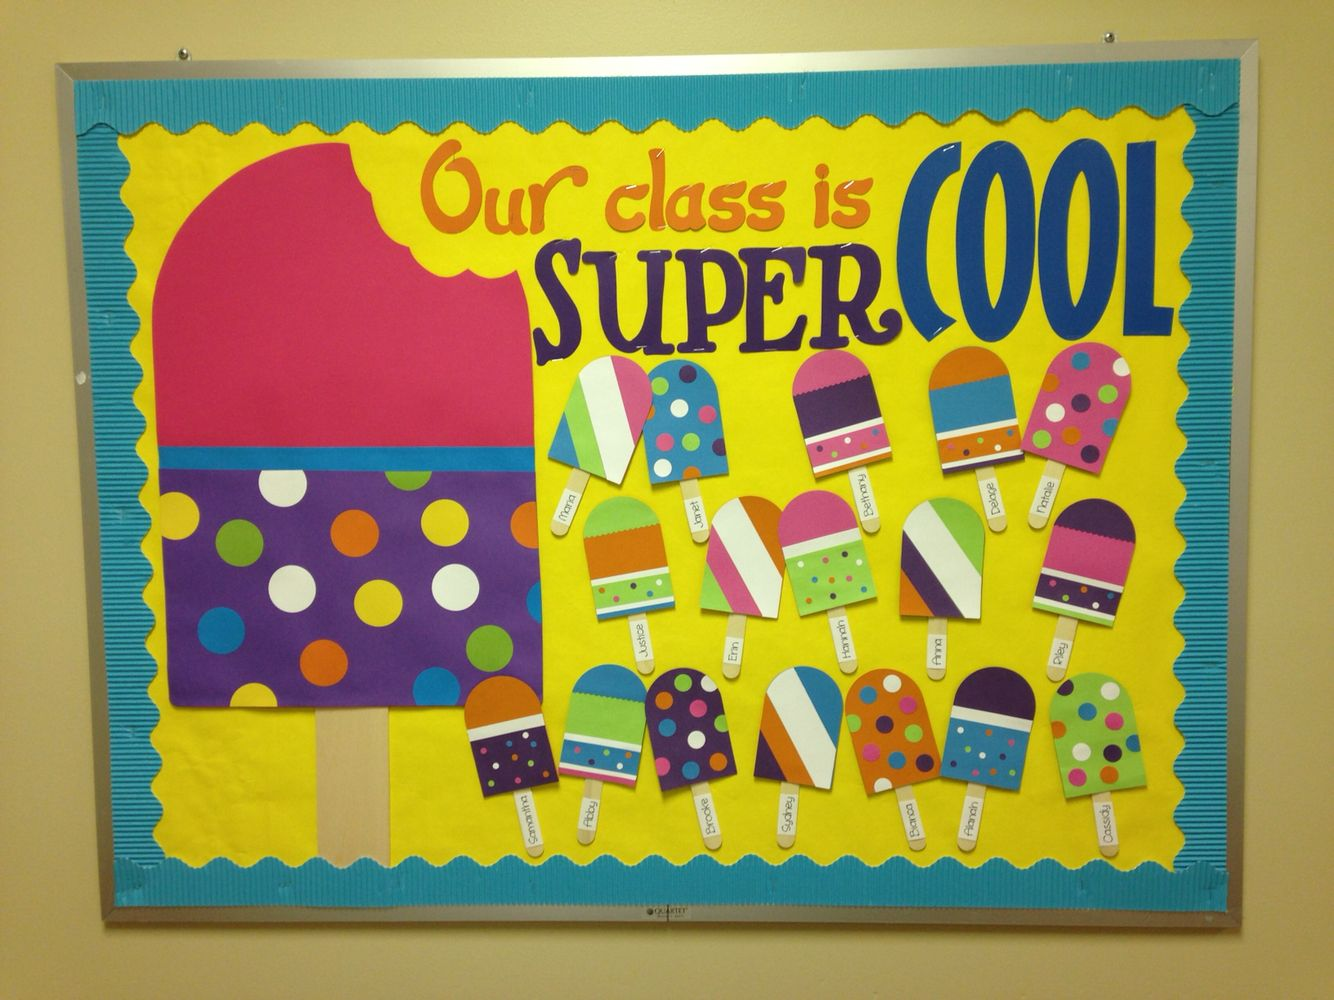 Go green vegetable bulletin board idea myclassroomideas com - This Is A Very Cute Idea For A Bulletin Board Especially For Spring Summer Time The Kids Could Even Decorate Their Own Popsicles